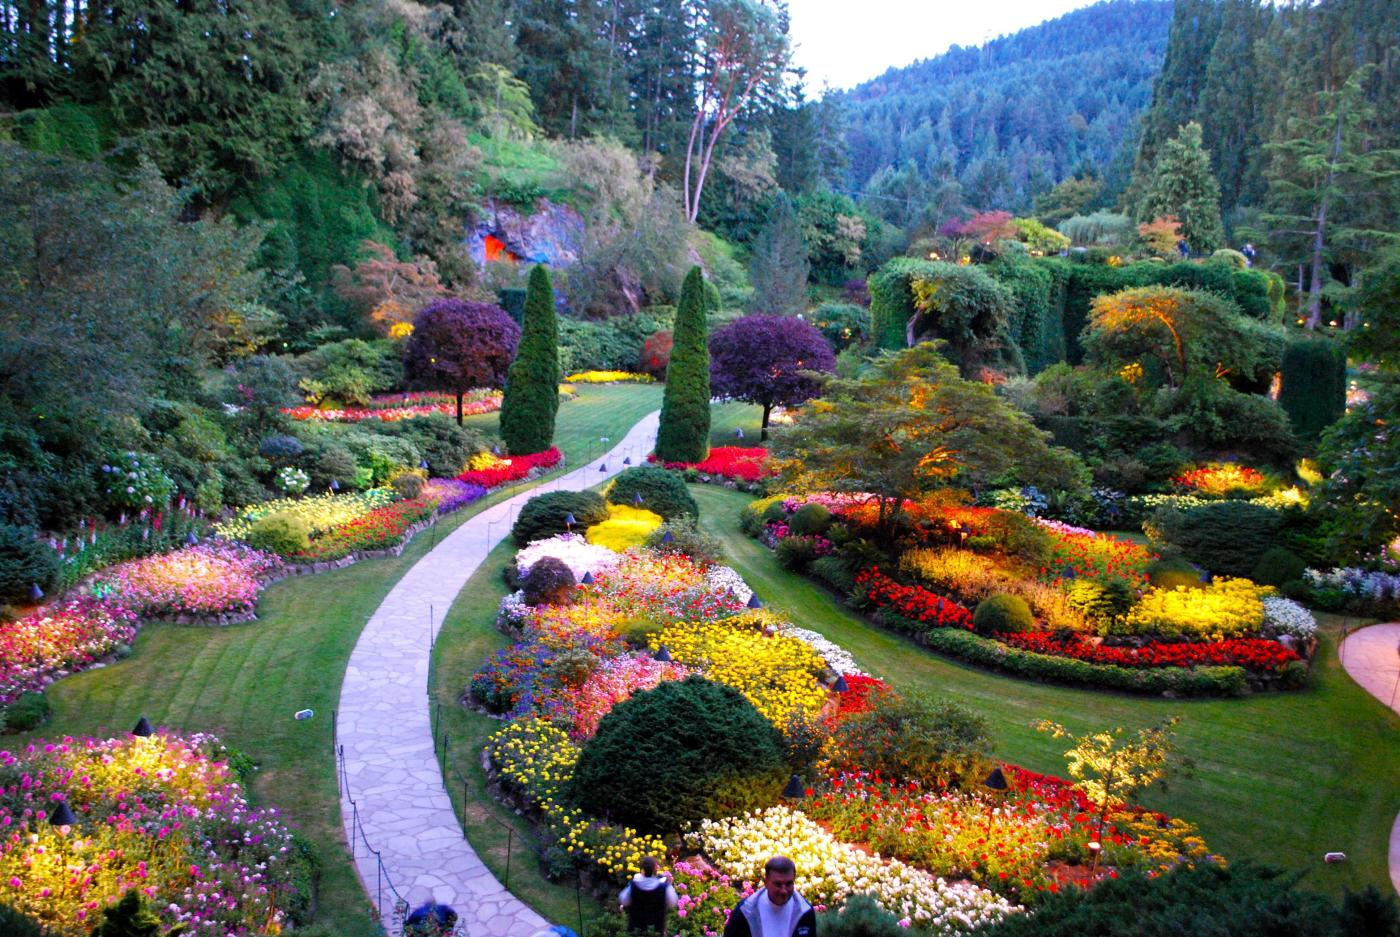 historic-downtown-and-butchart-gardens-victoria-bc-canada-1